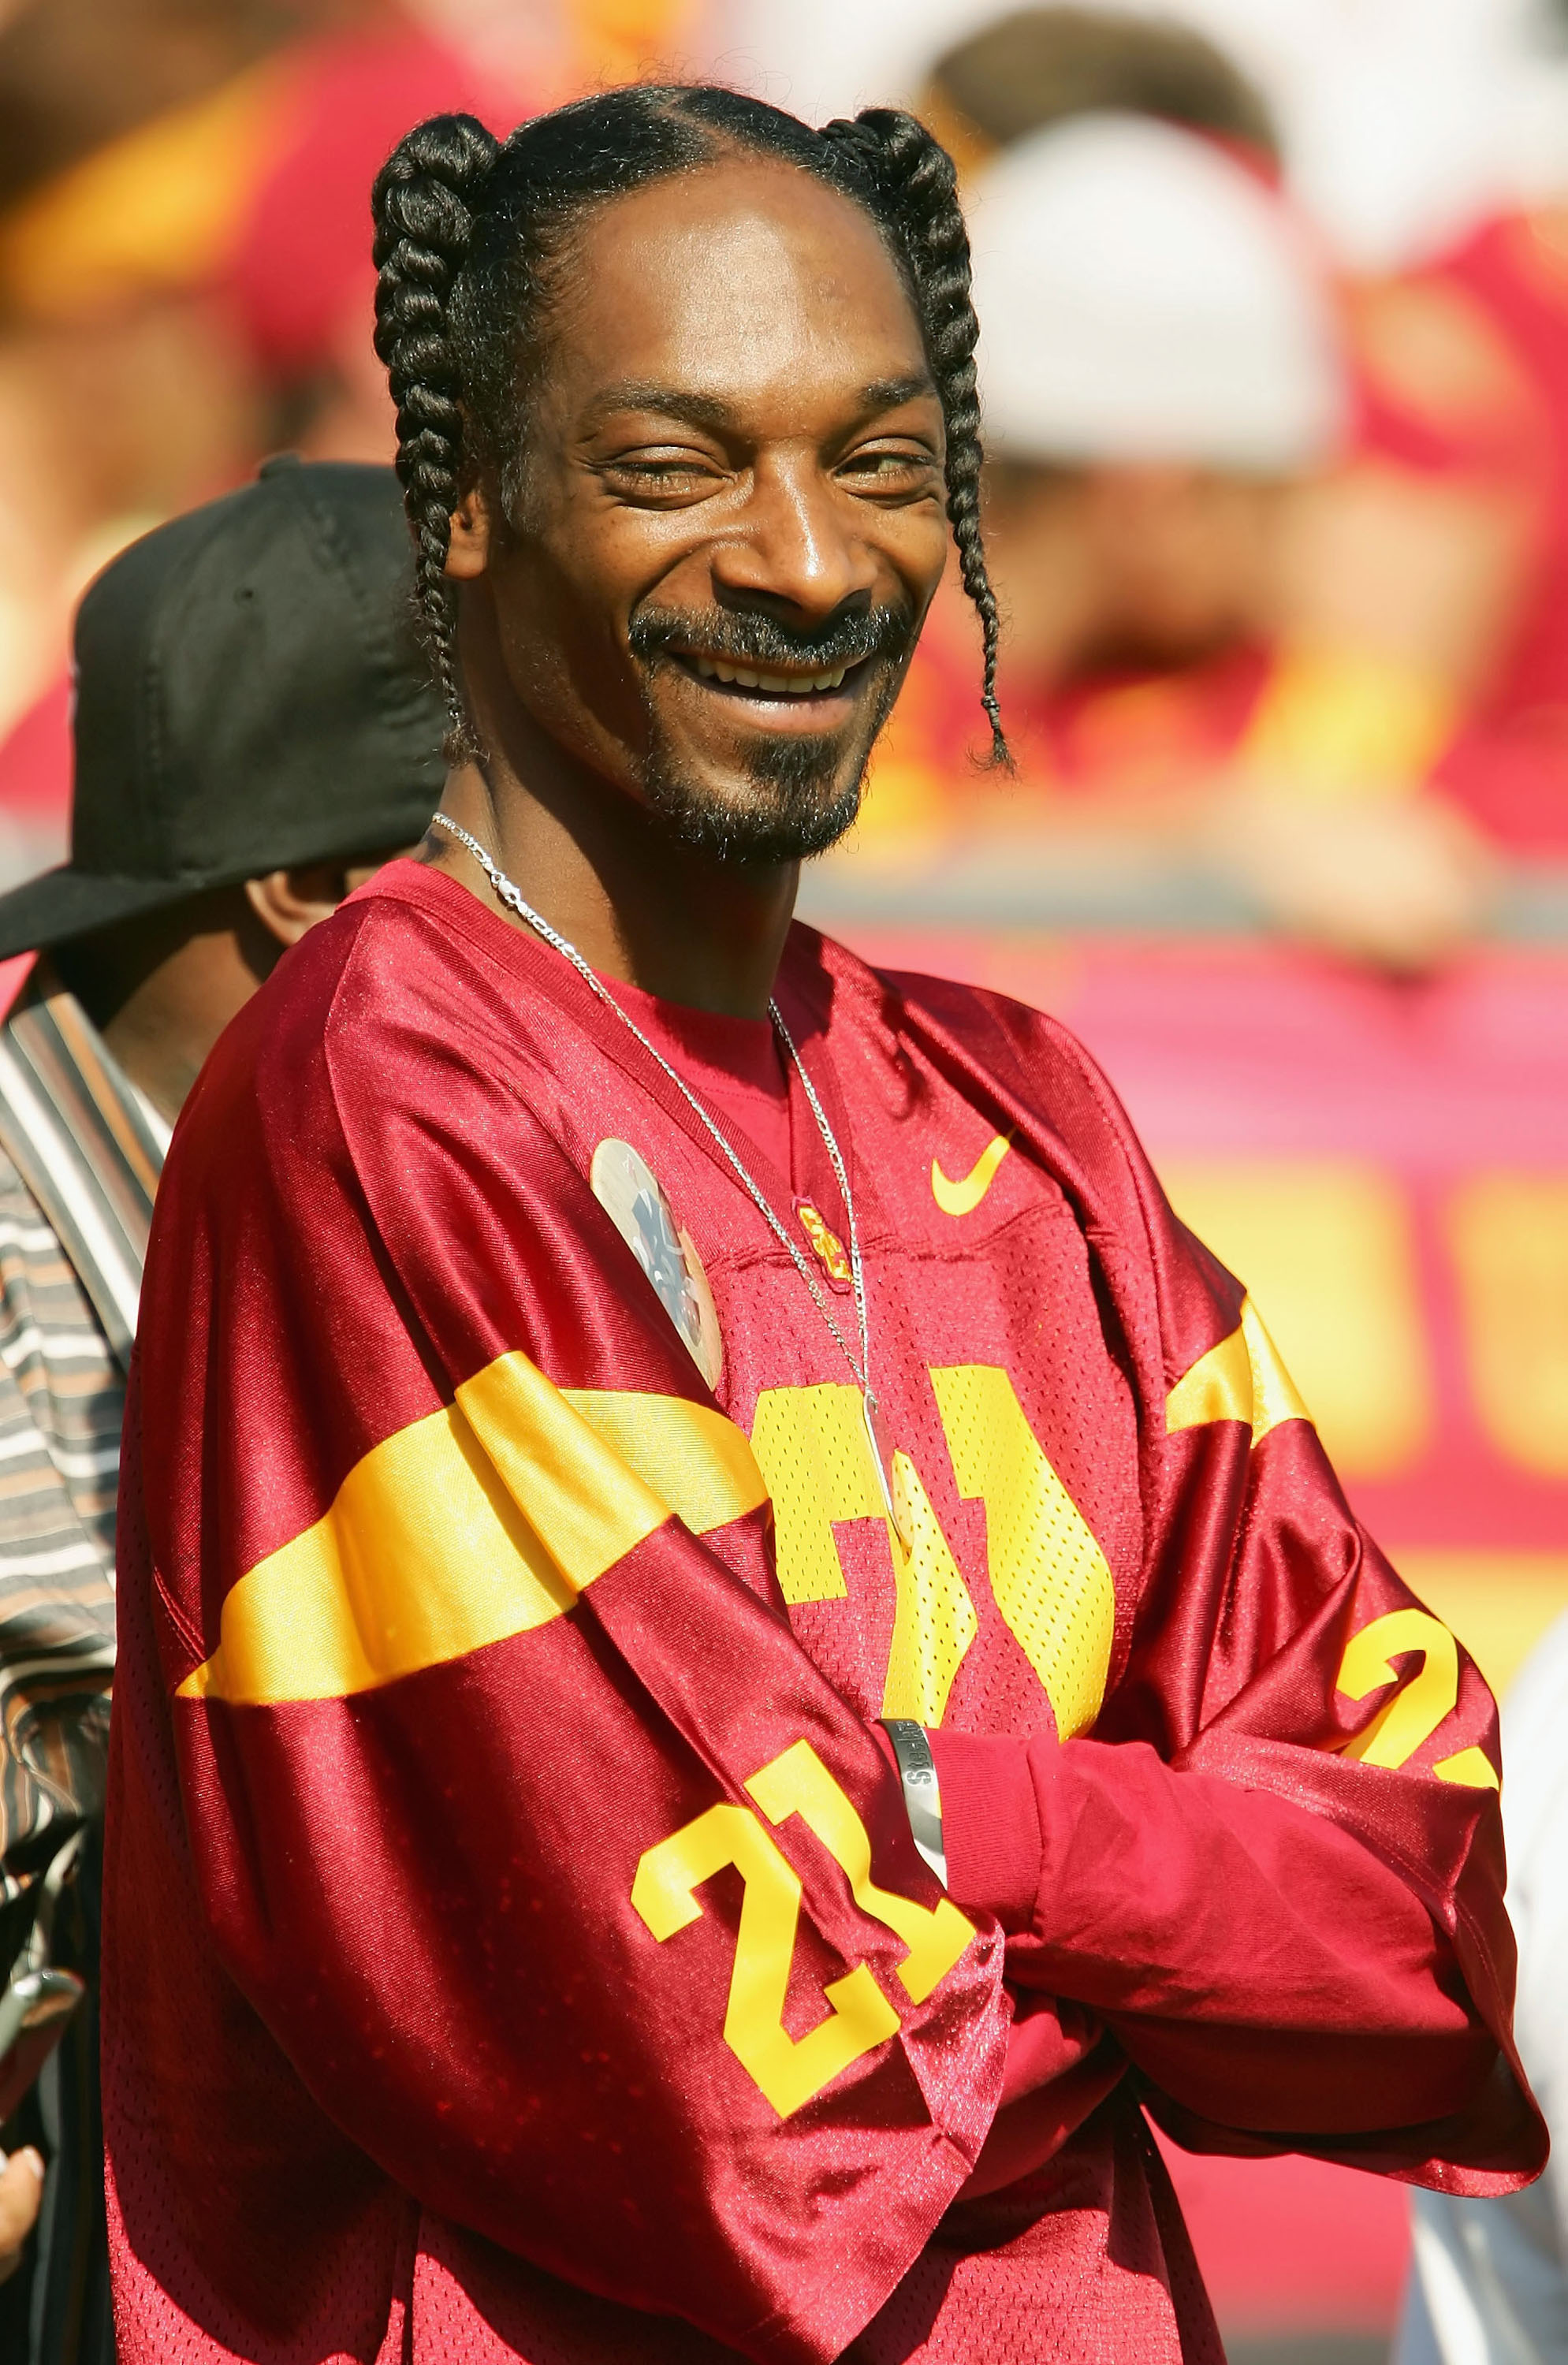 LOS ANGELES - OCTOBER 29:  Rapper Snoop Dogg watches the University of Southern California Trojans take on the Washington State Cougars October 29, 2005 at Los Angeles Memorial Coliseum in Los Angeles, California.  (Photo by Lisa Blumenfeld/Getty Images)